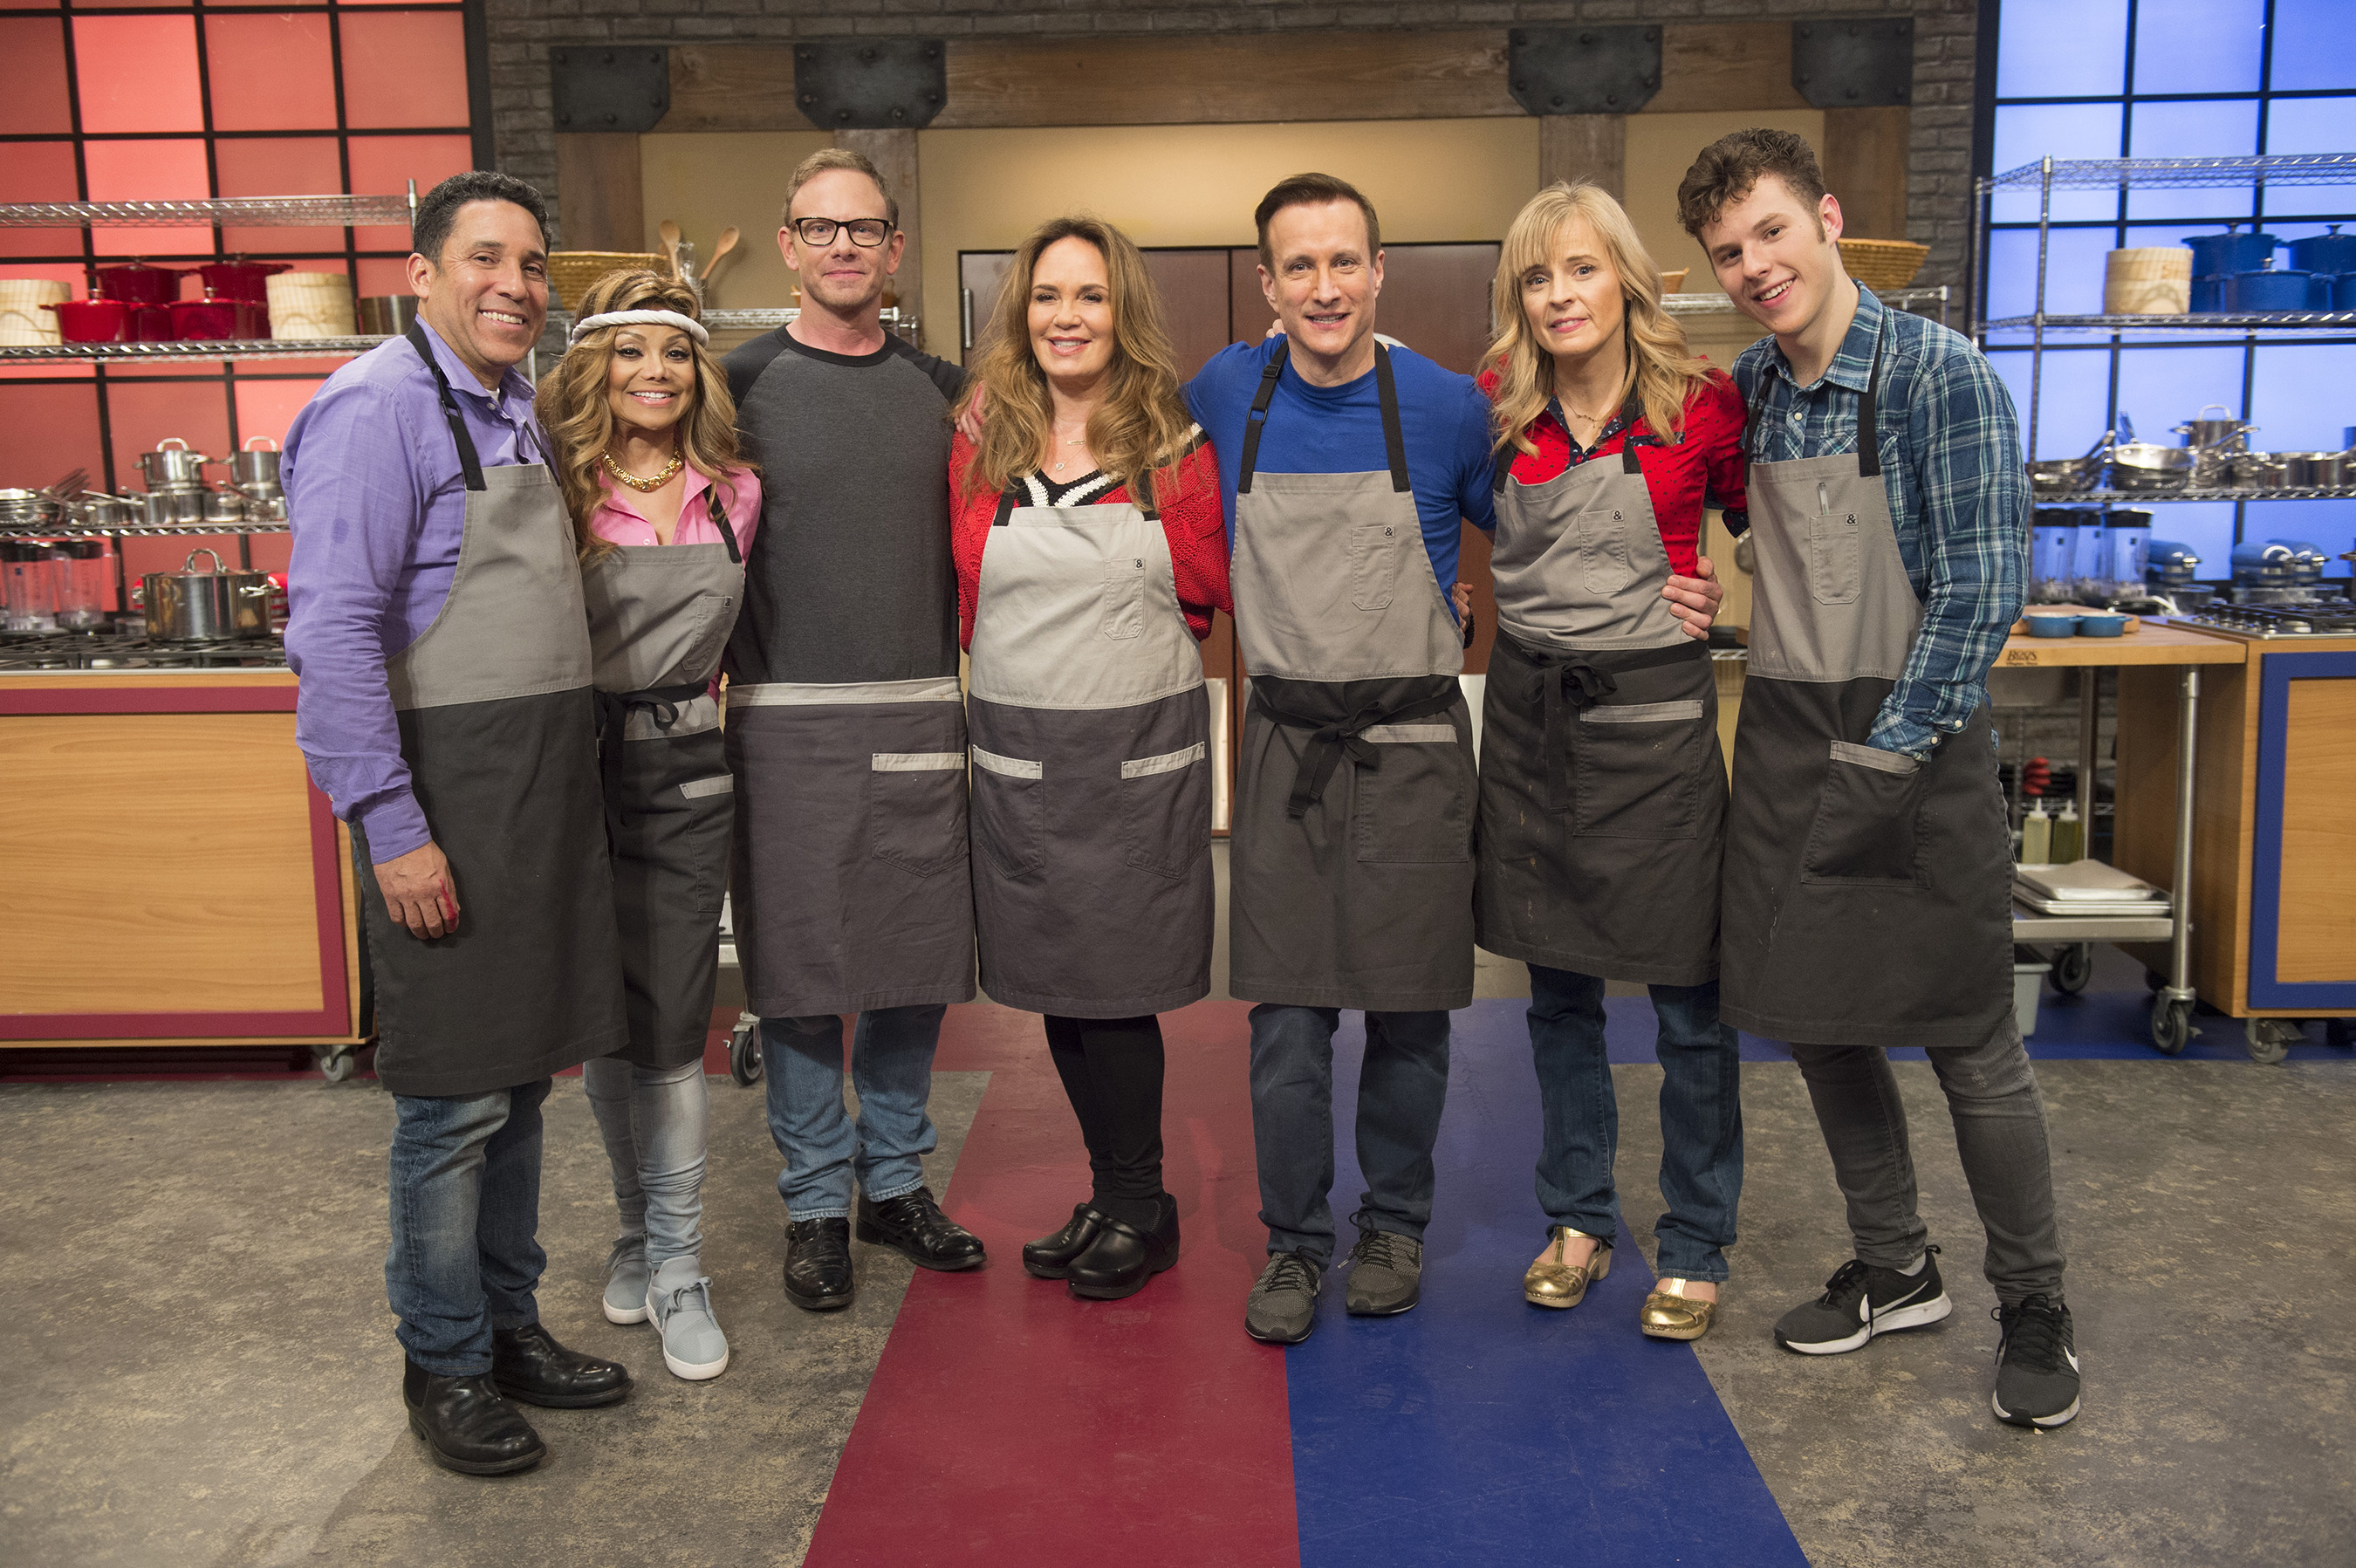 The recruits of Food Network's Worst Cooks in America: Celebrity Edition